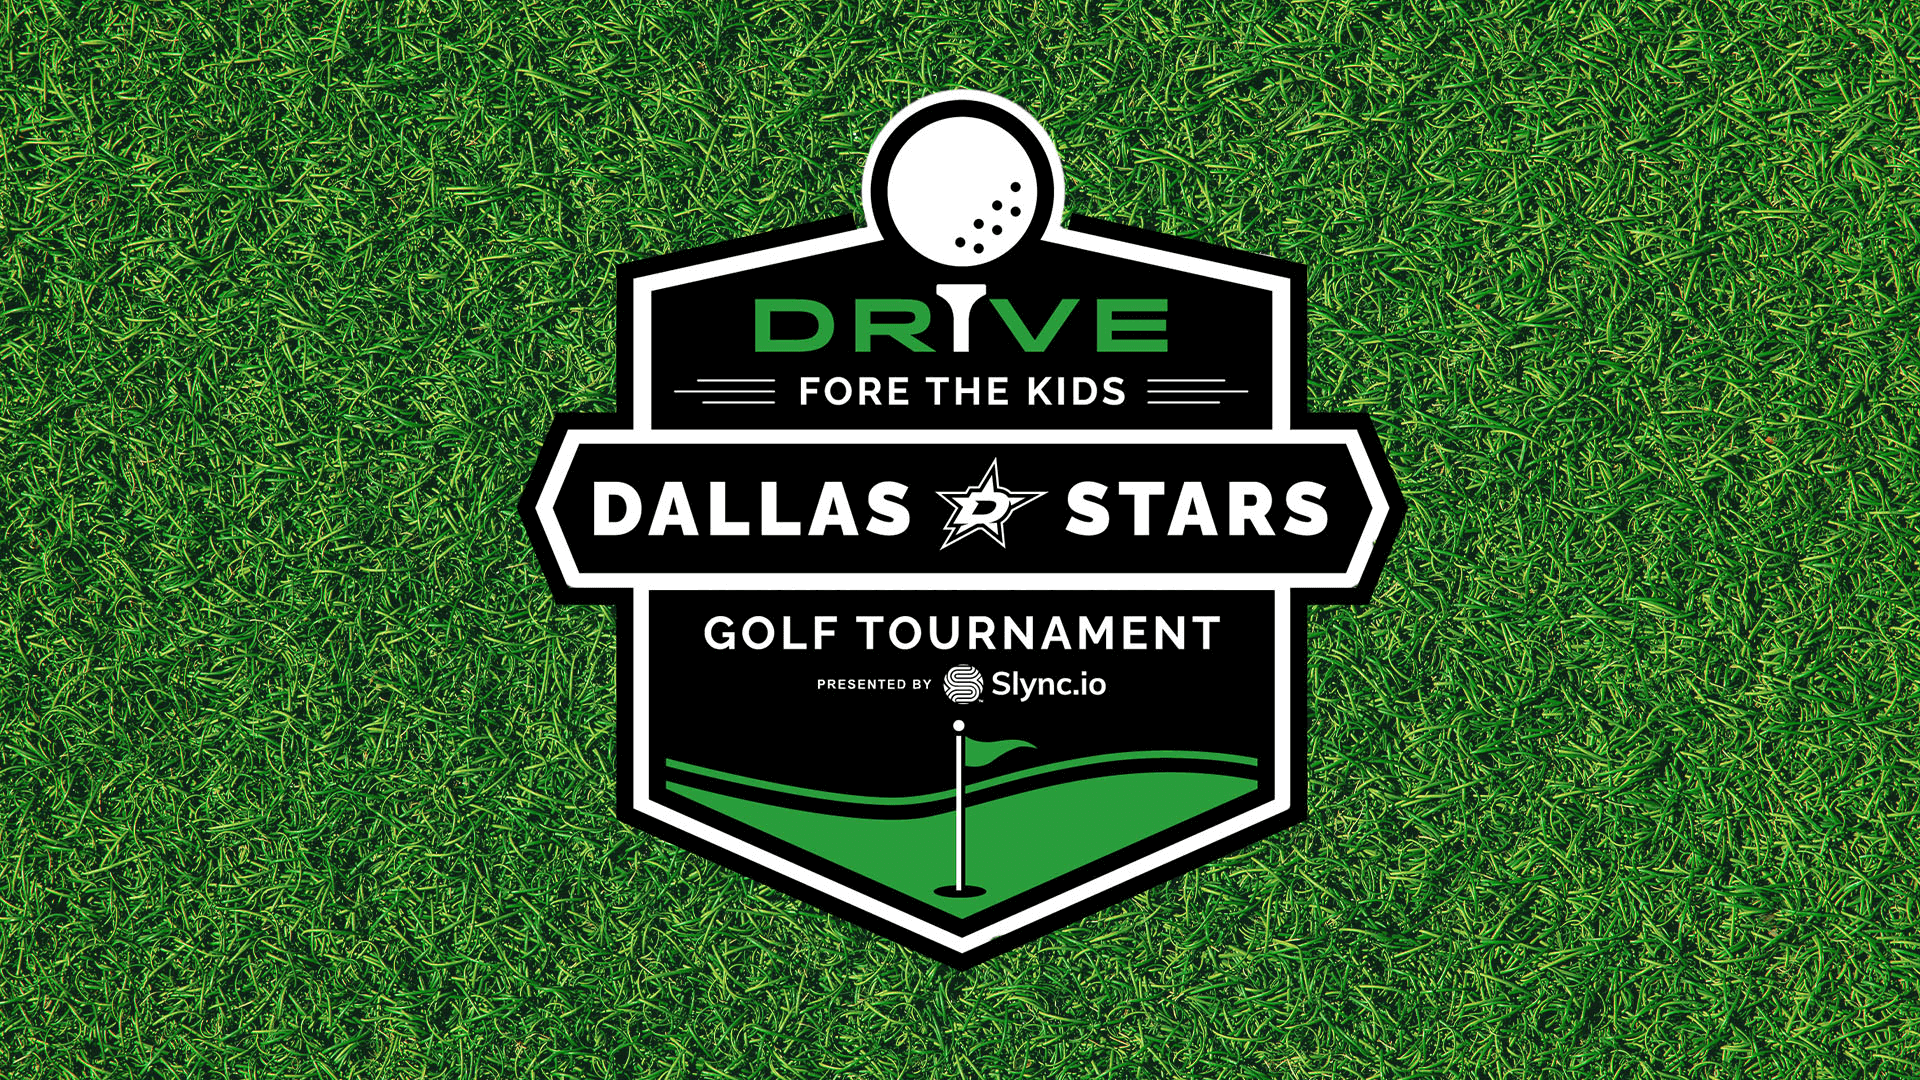 Every spring, Slync.io is the presenting sponsor for Dallas Stars Foundation's charity golf outing to benefit and support a variety of their initiatives. $230,000 was raised during this year's event!